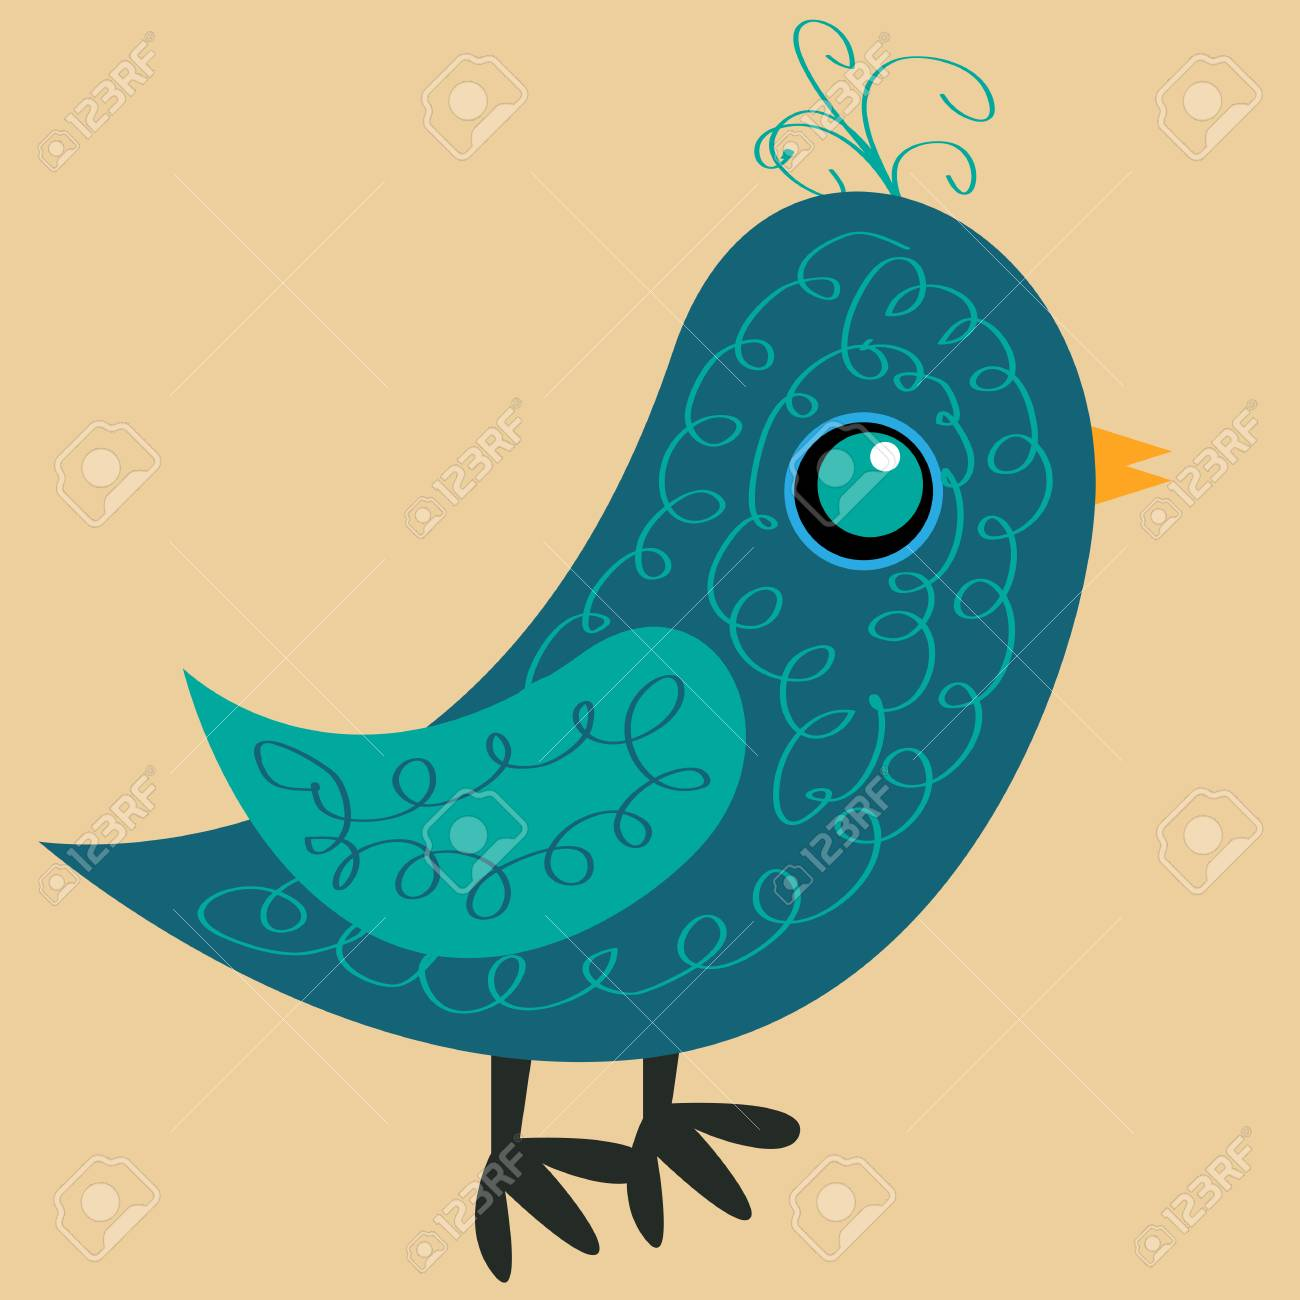 Nice blue bird with a pattern on the body, a yellow beak and a blue eye, a side view - 88321364